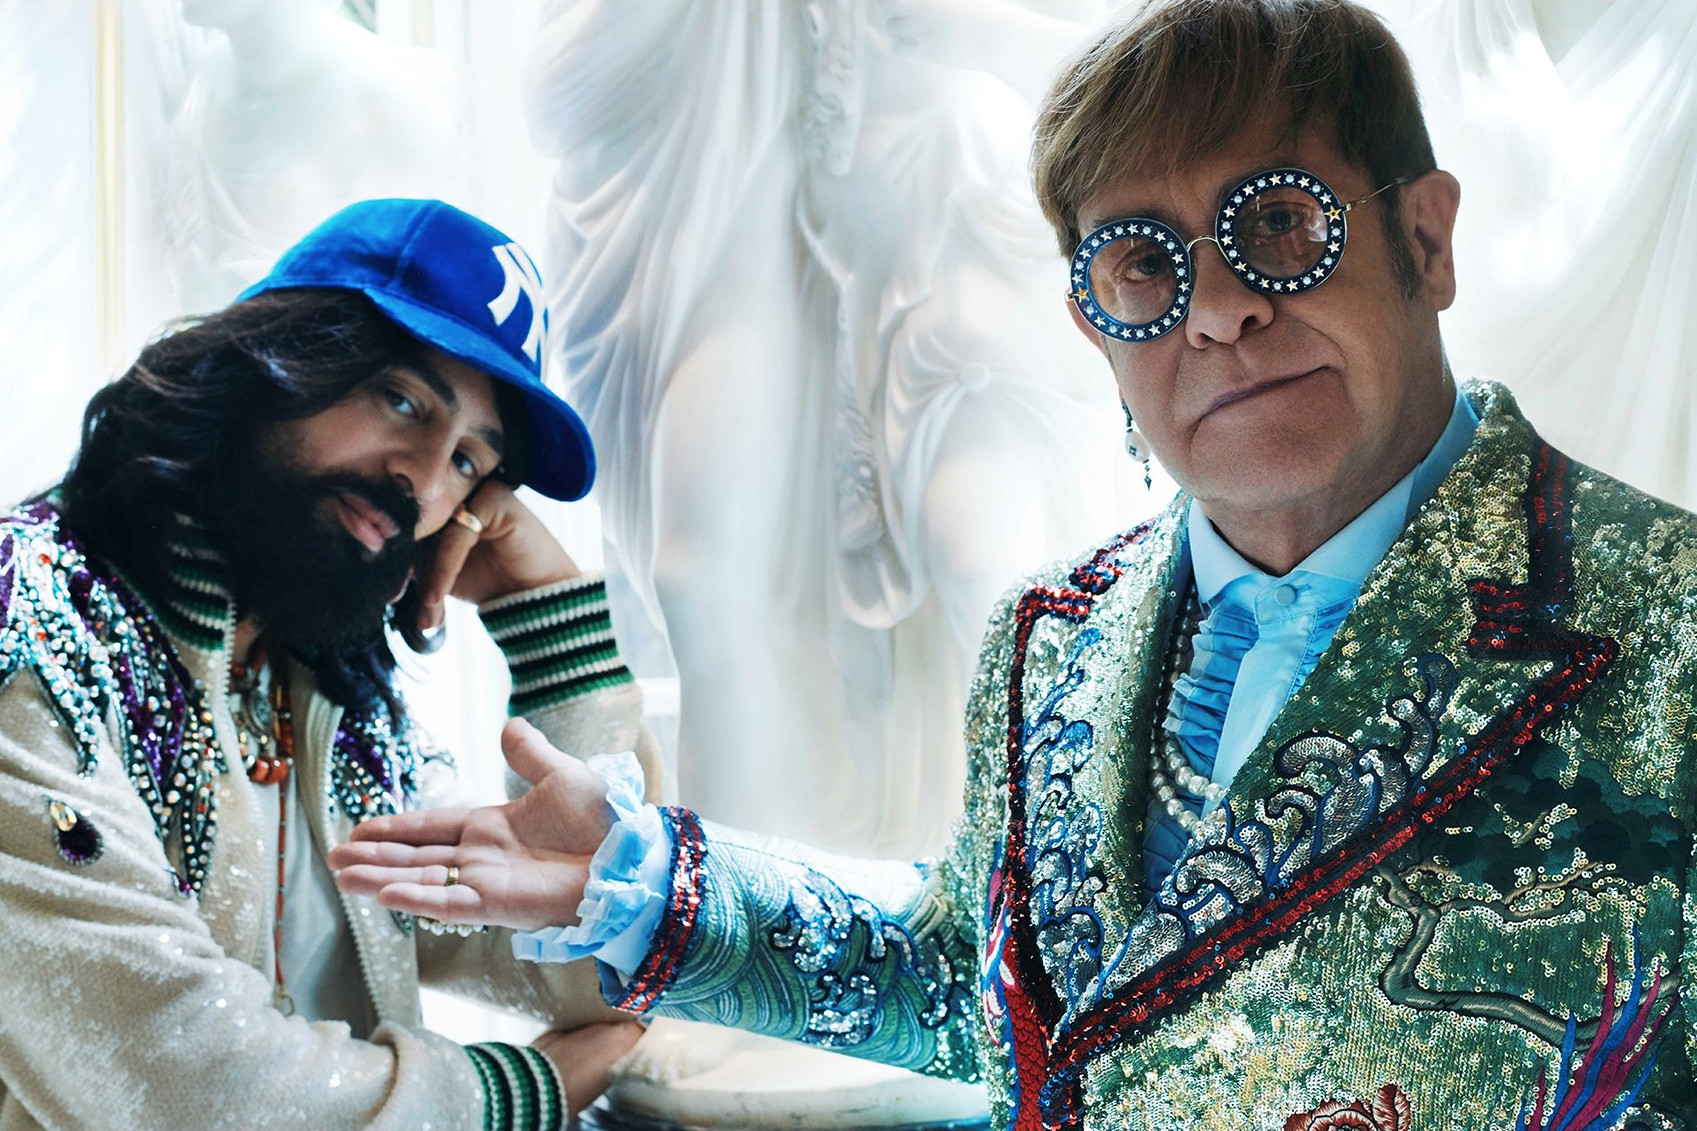 66fd75fd6ff4 Influential, innovative and progressive, Gucci is reinventing a wholly  modern approach to fashion.